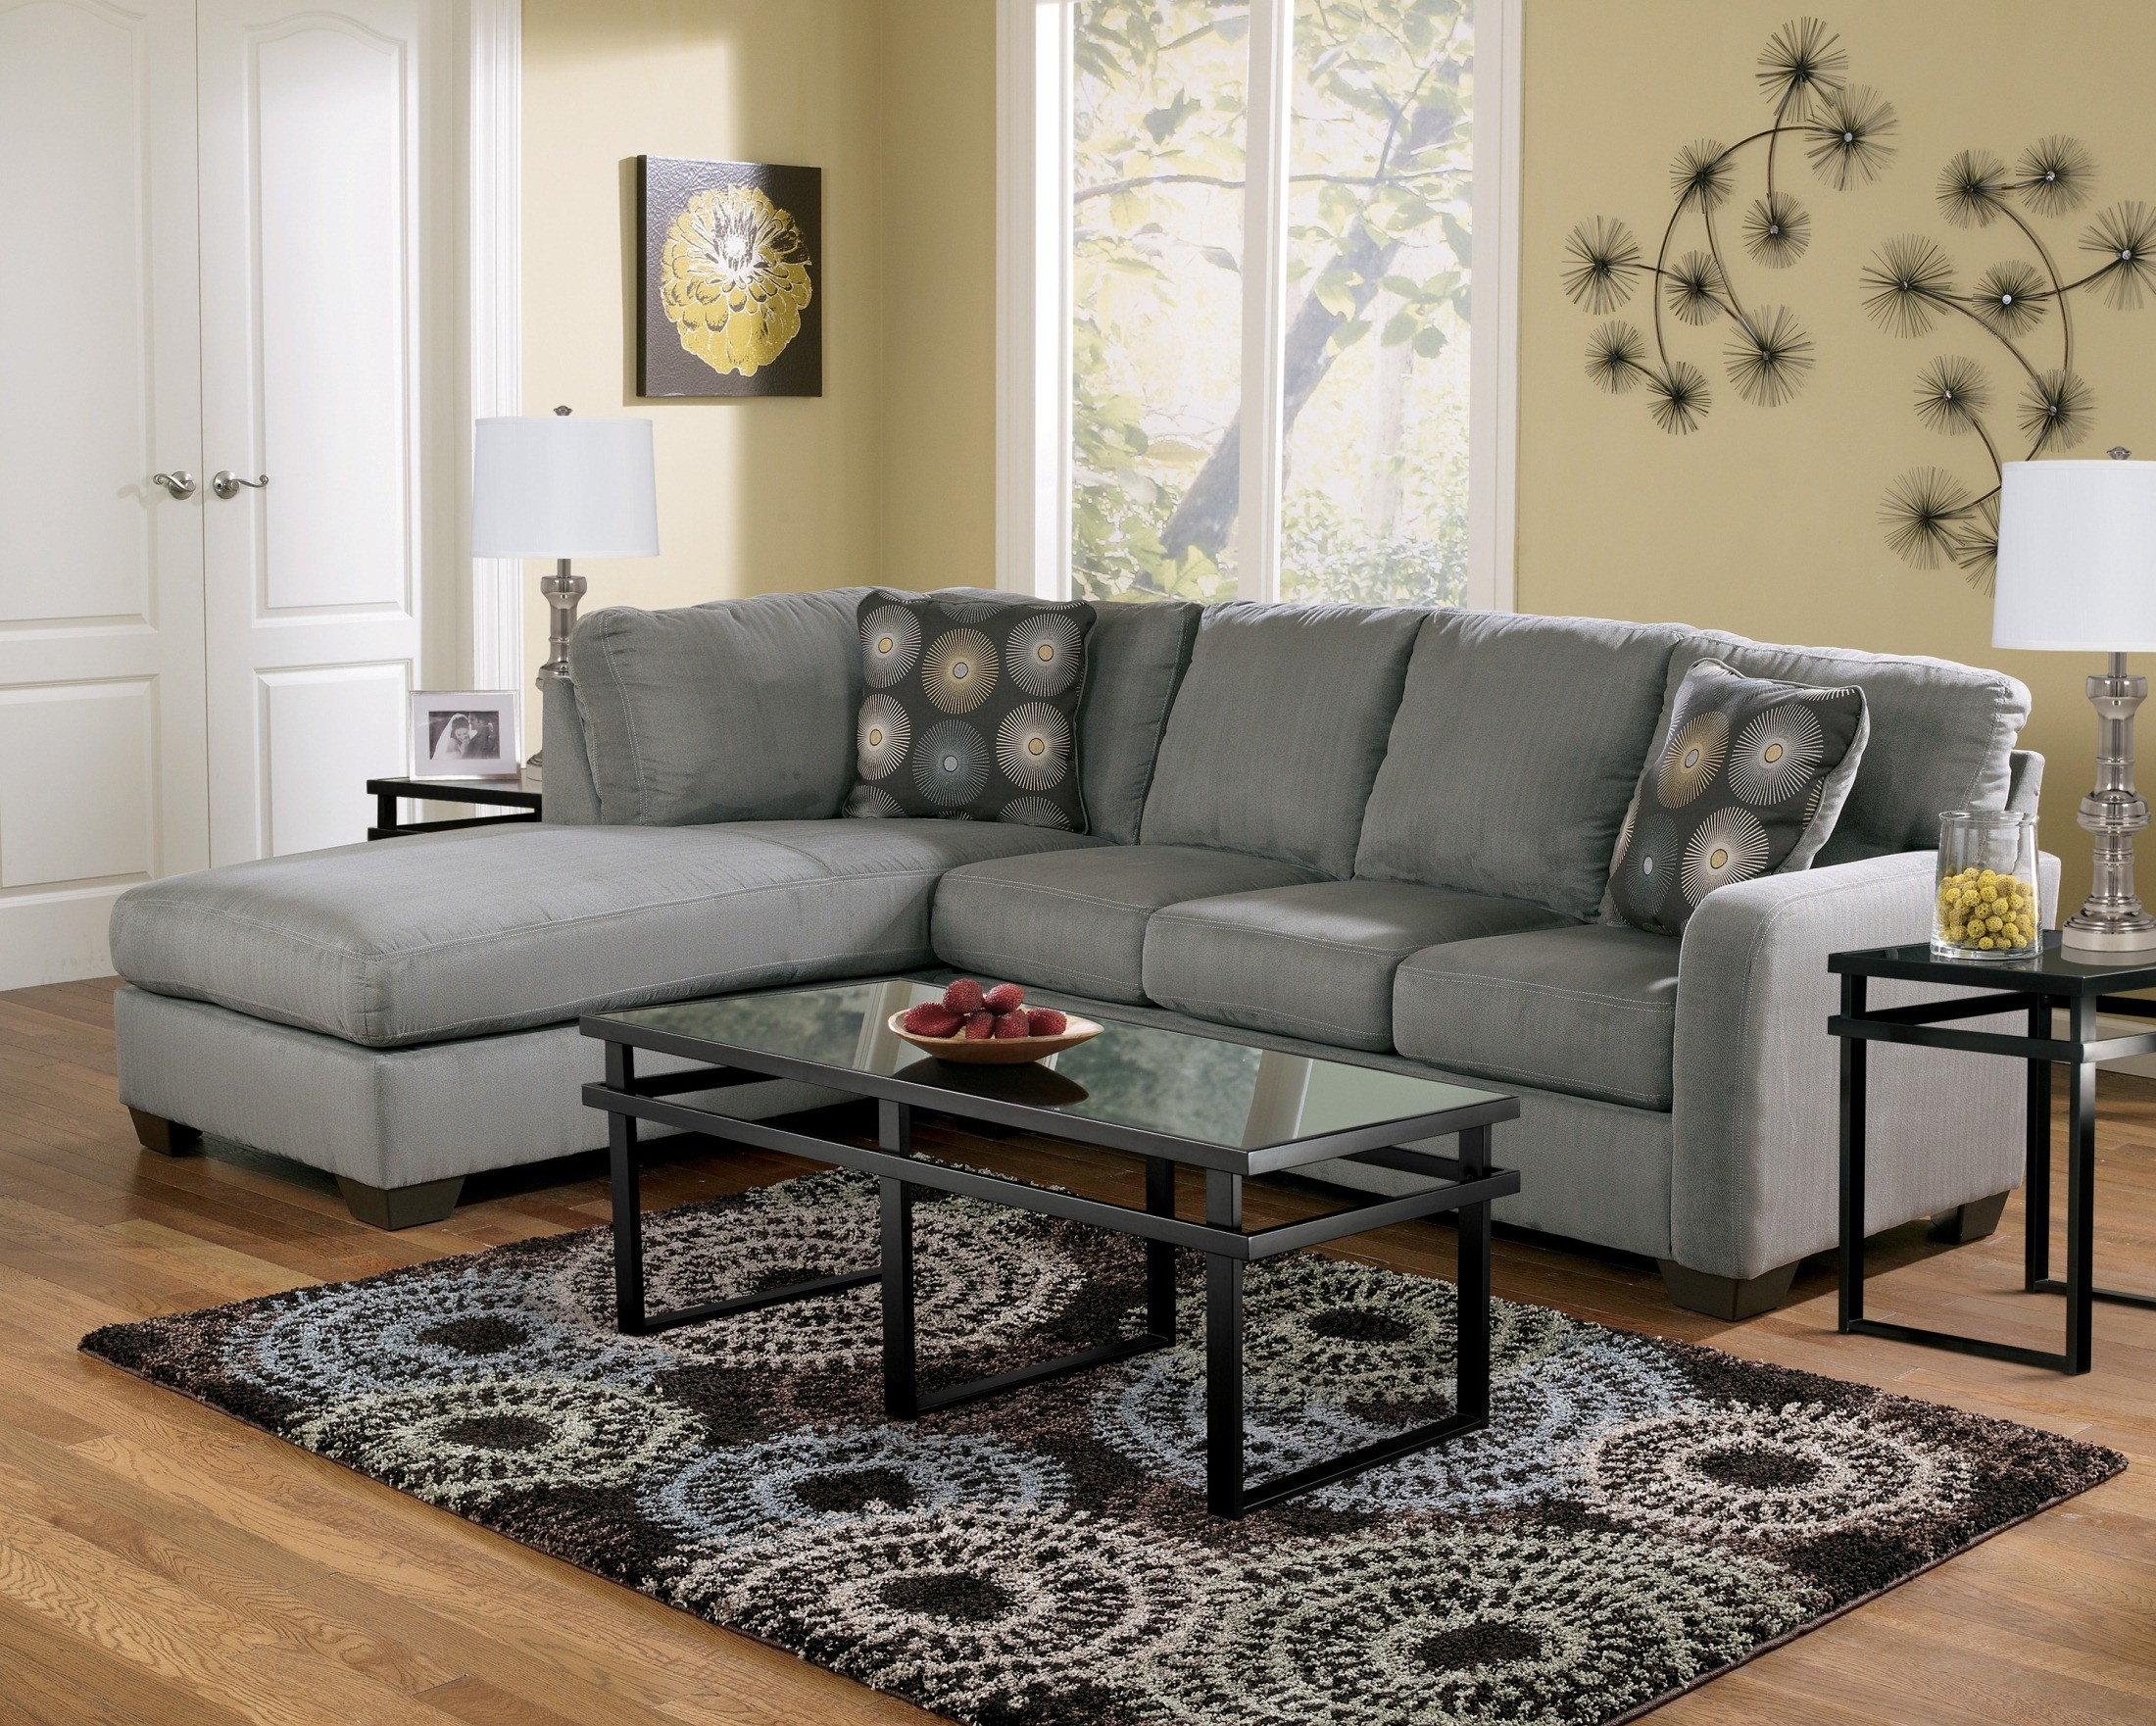 Zella Charcoal Left Arm Facing Sectional From Ashley